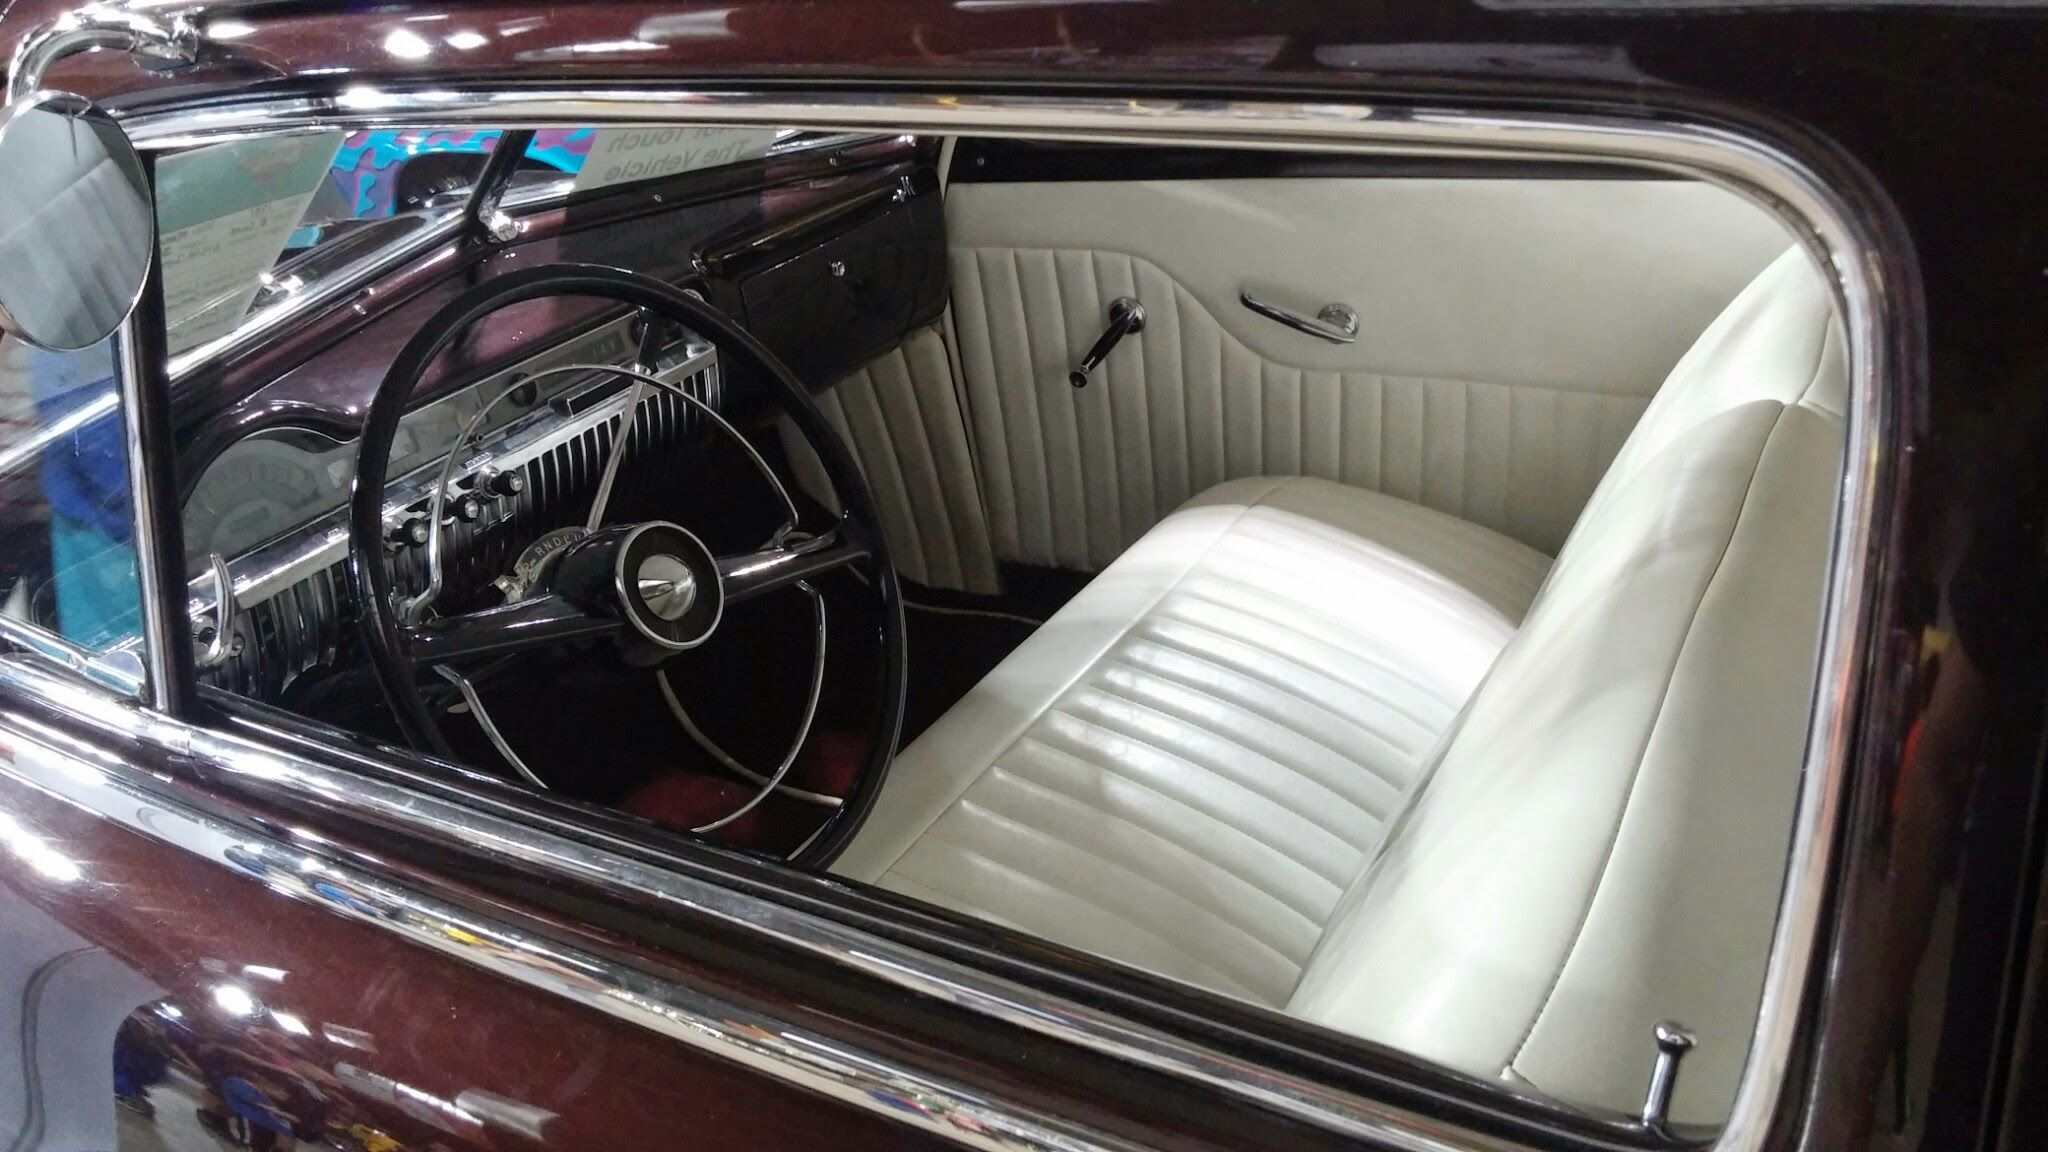 pleated white interior of a 1949 1950 Mercury coupe. Pic 1